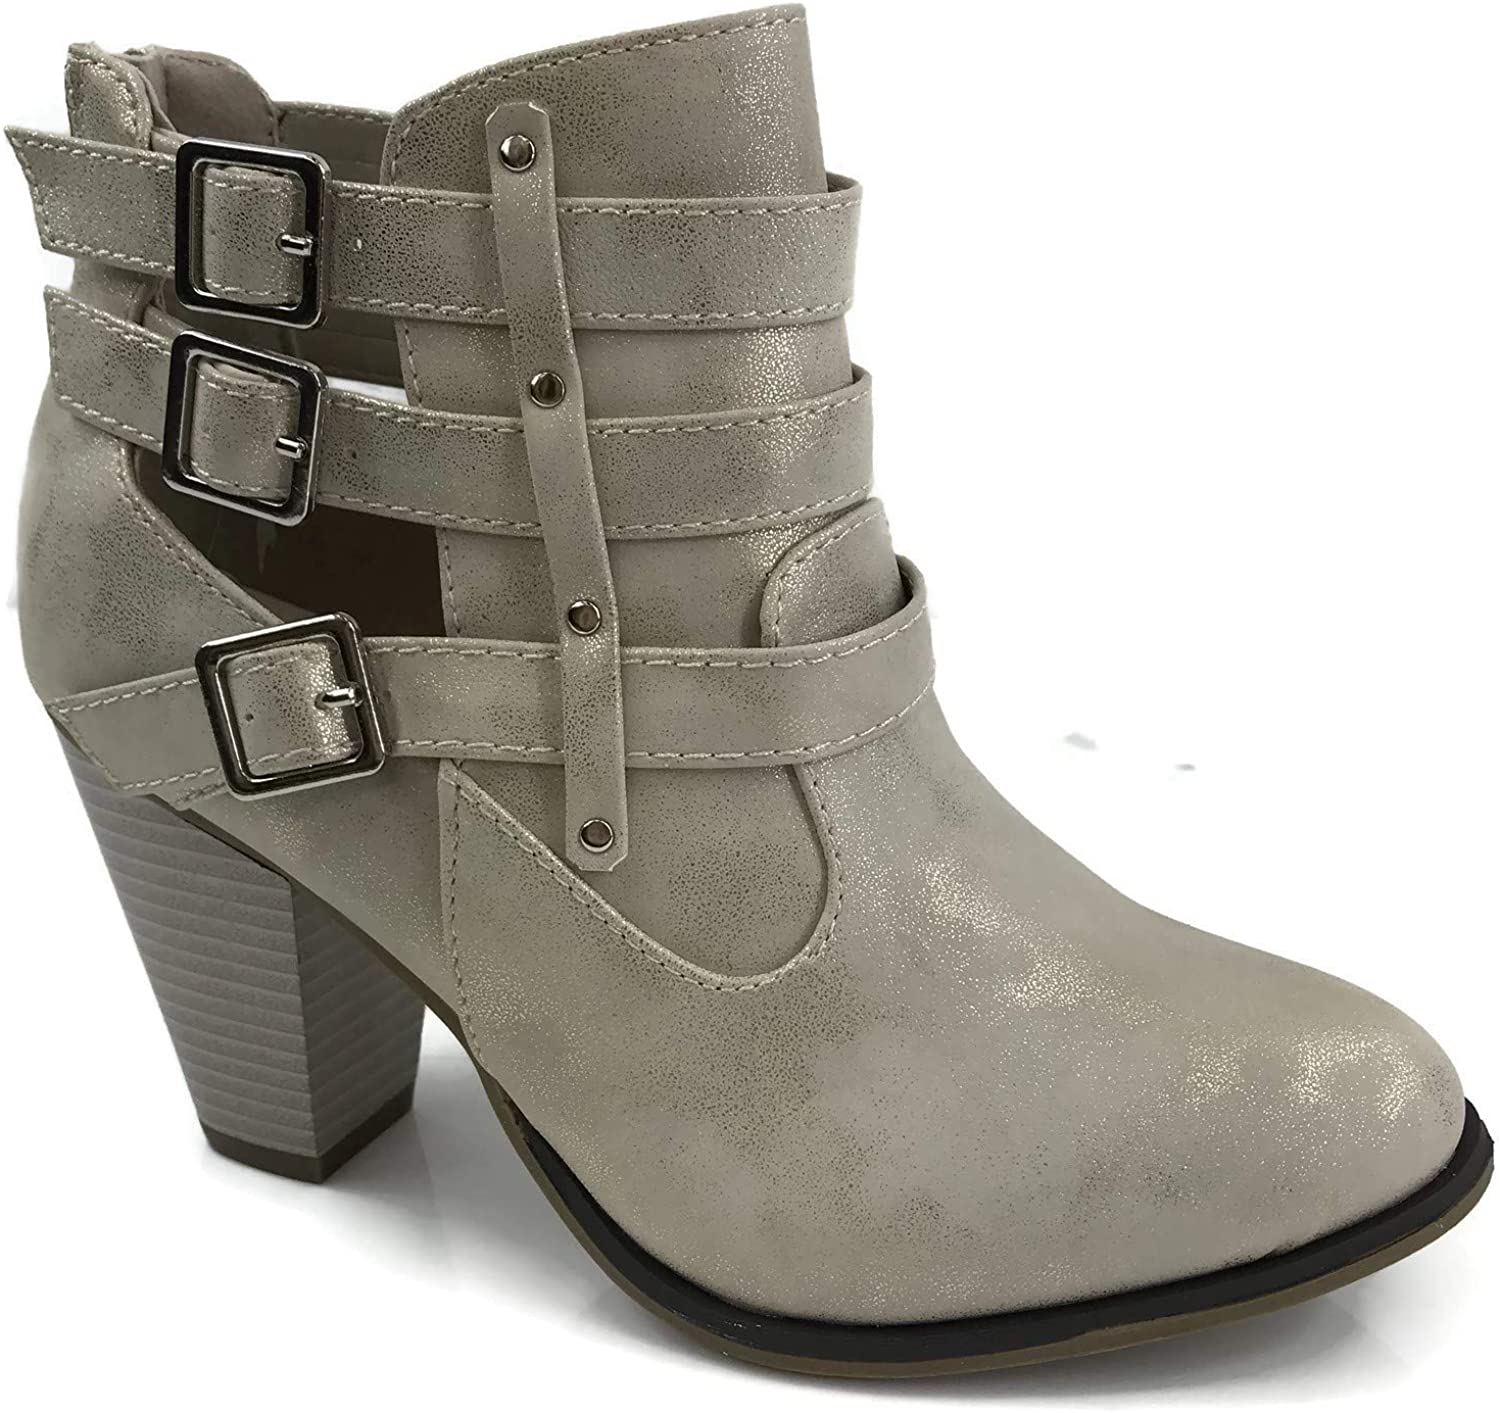 Women's Short Ankle Riding Boots with Chunky Heel Bootie Three Buckled Strap